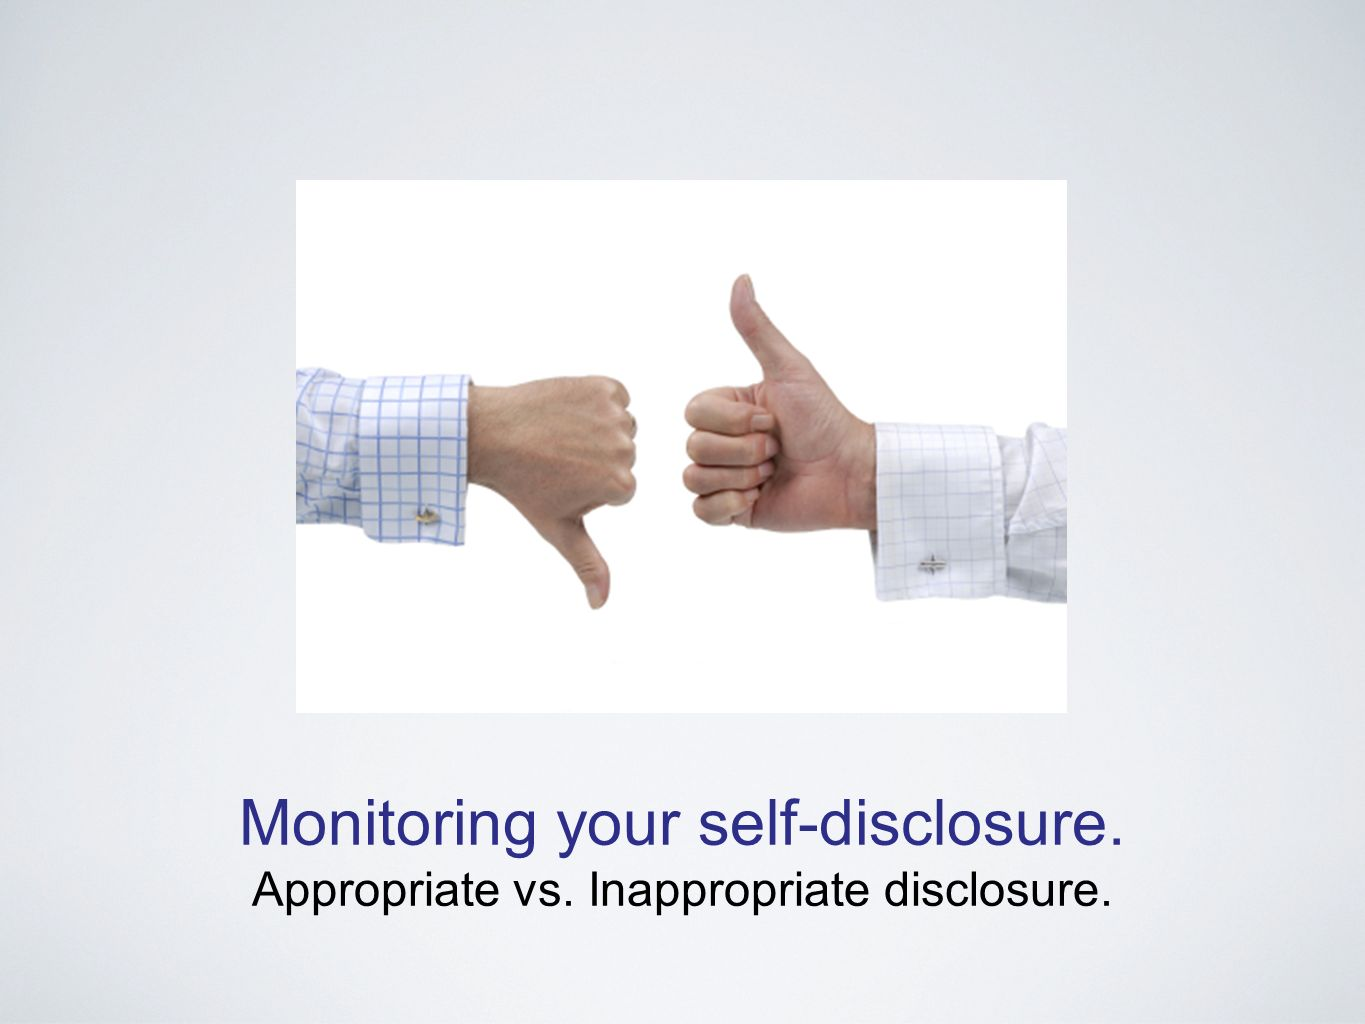 Monitoring your self-disclosure. Appropriate vs. Inappropriate disclosure.